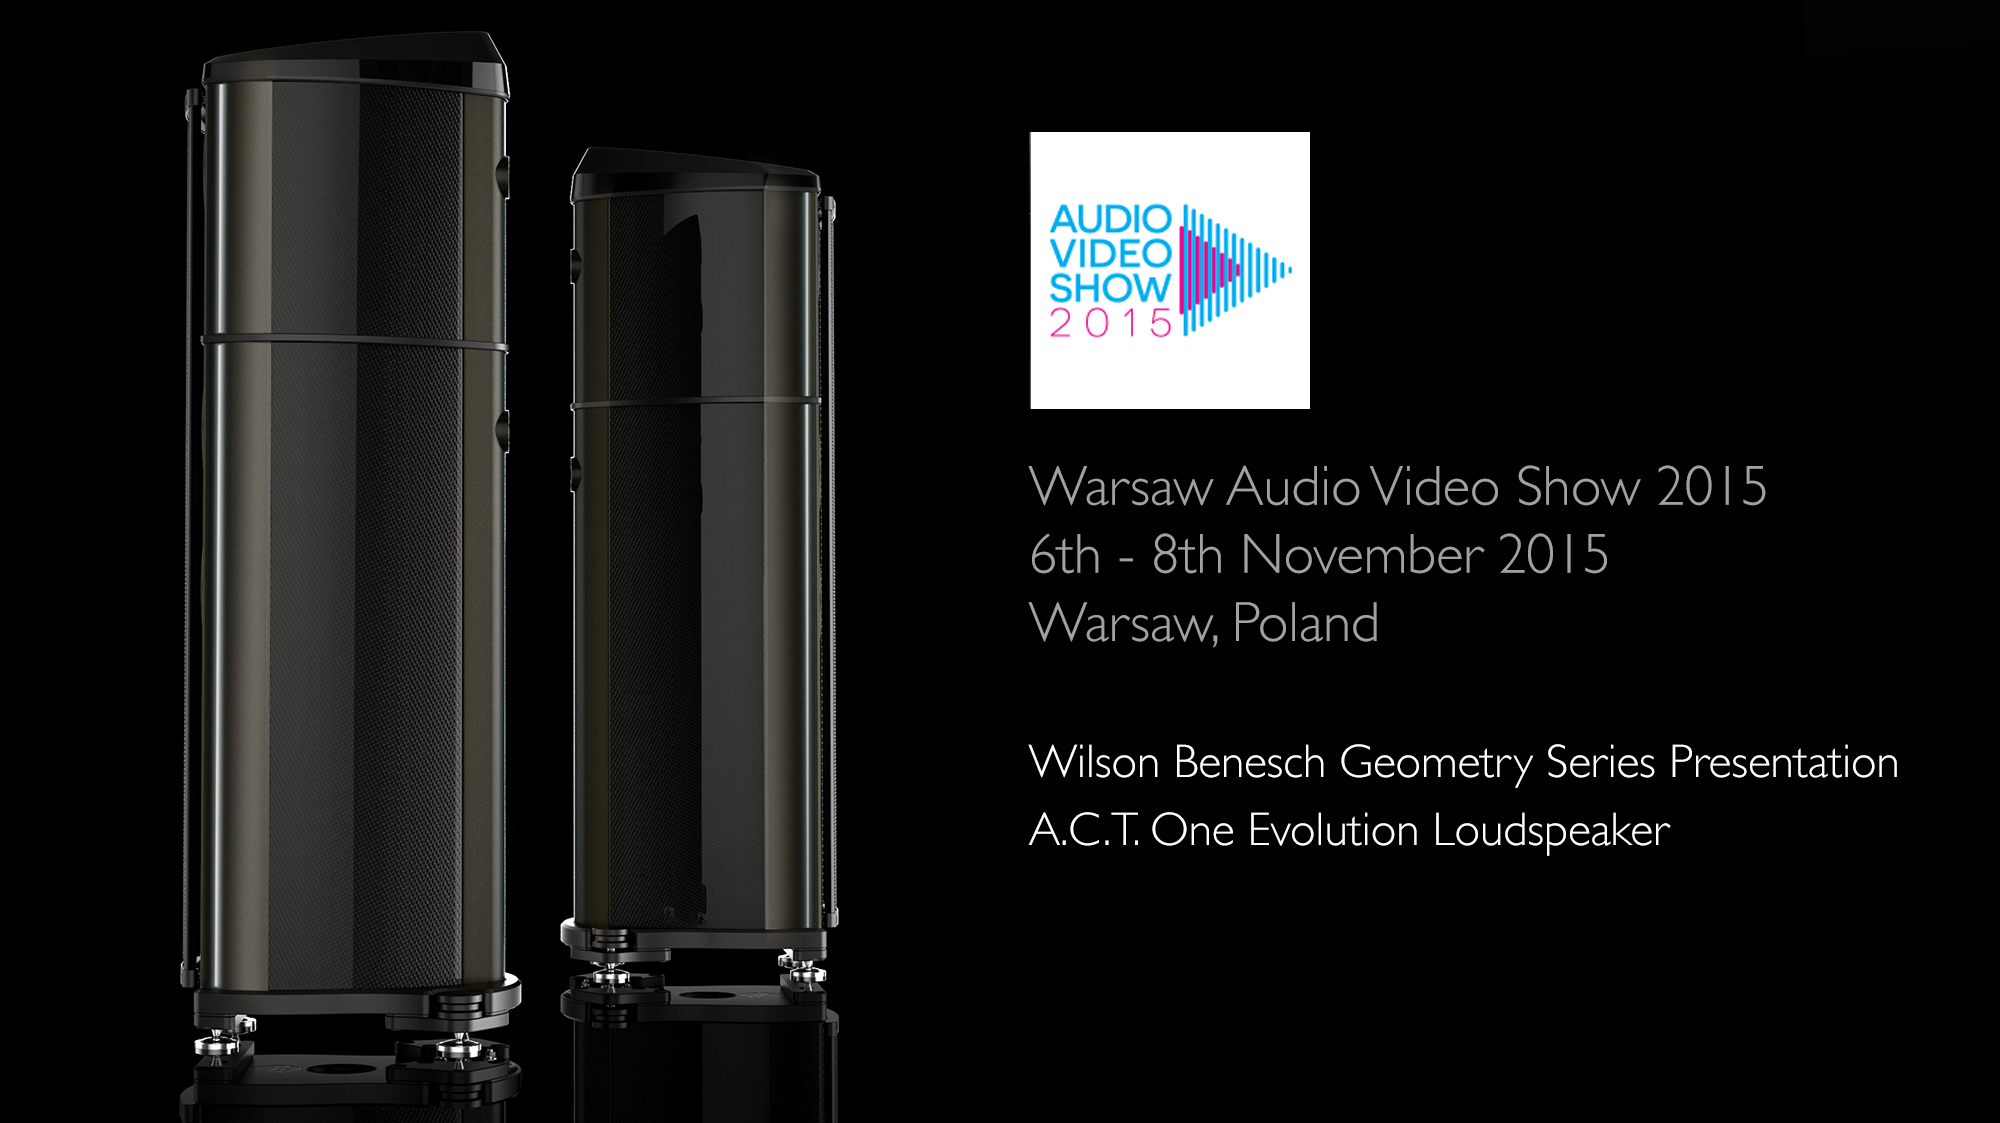 Wilson Benesch - A.C.T. One Evolution - Loudspeaker - Warsaw - Audio - Video - Show - Poland - Carbon Fibre - British - High - End - Audio - Geometry Series - Reference Line